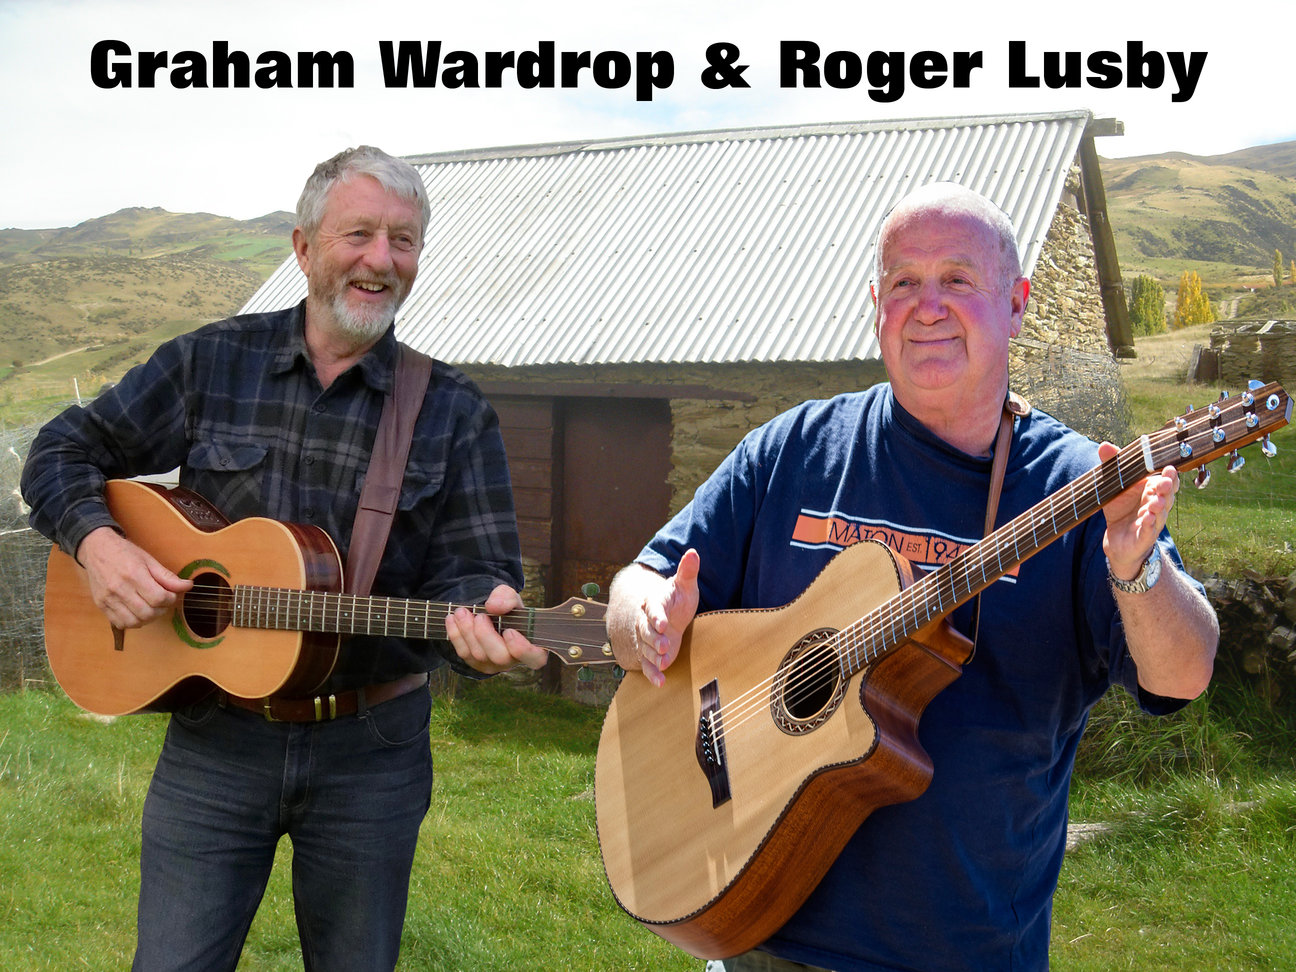 Graham Wardrop and Roger Lusby